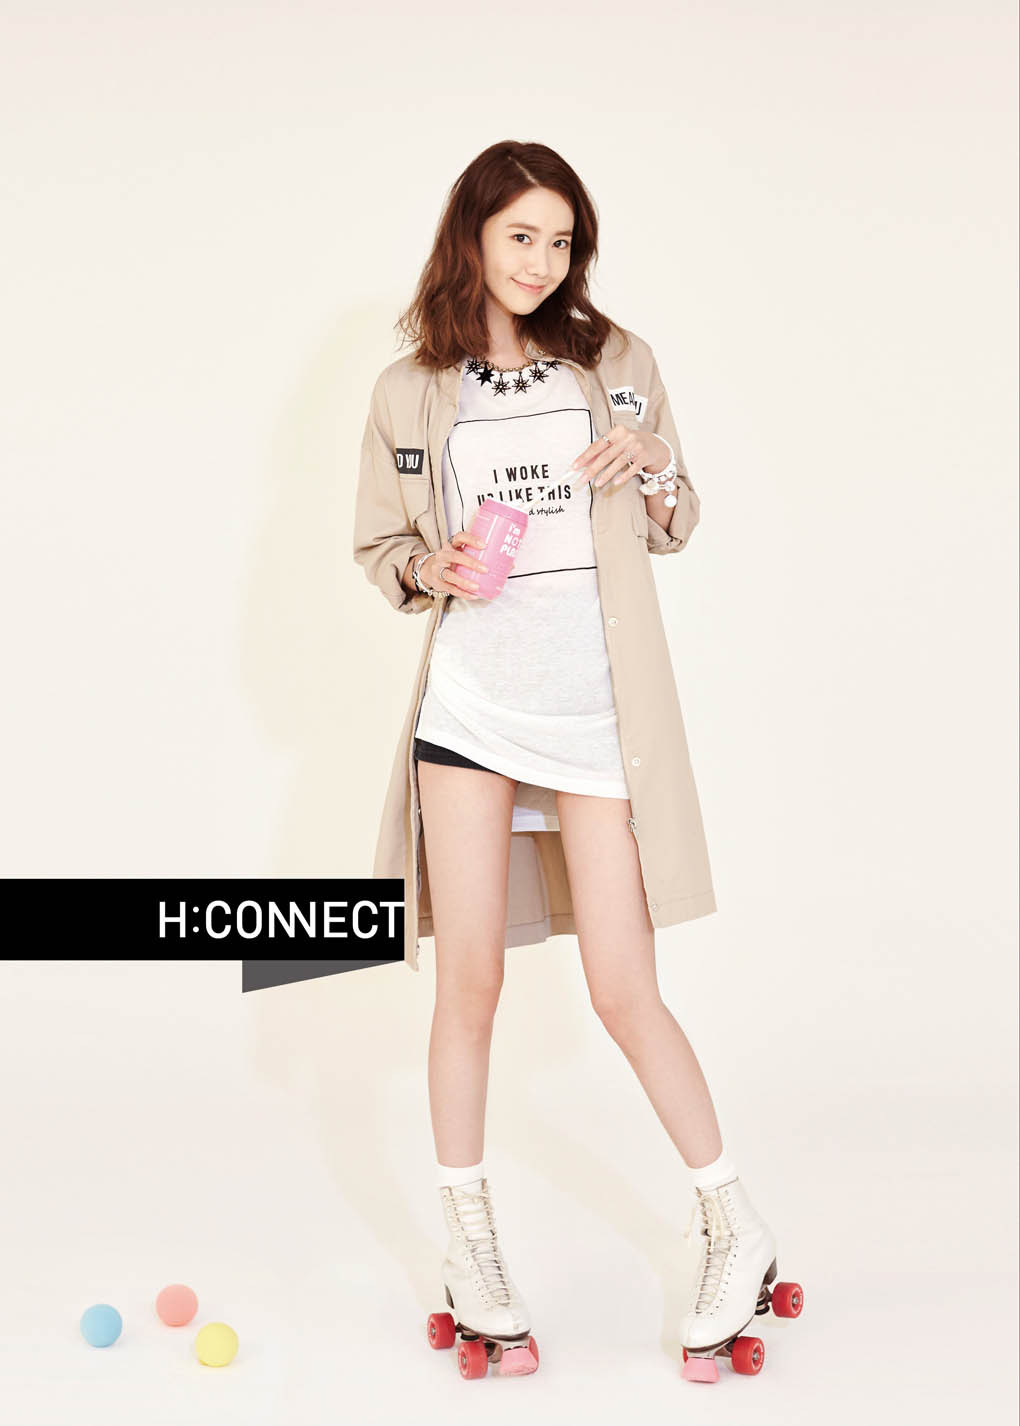 SNSD Yoona - H:Connect 2015 Pictures 4